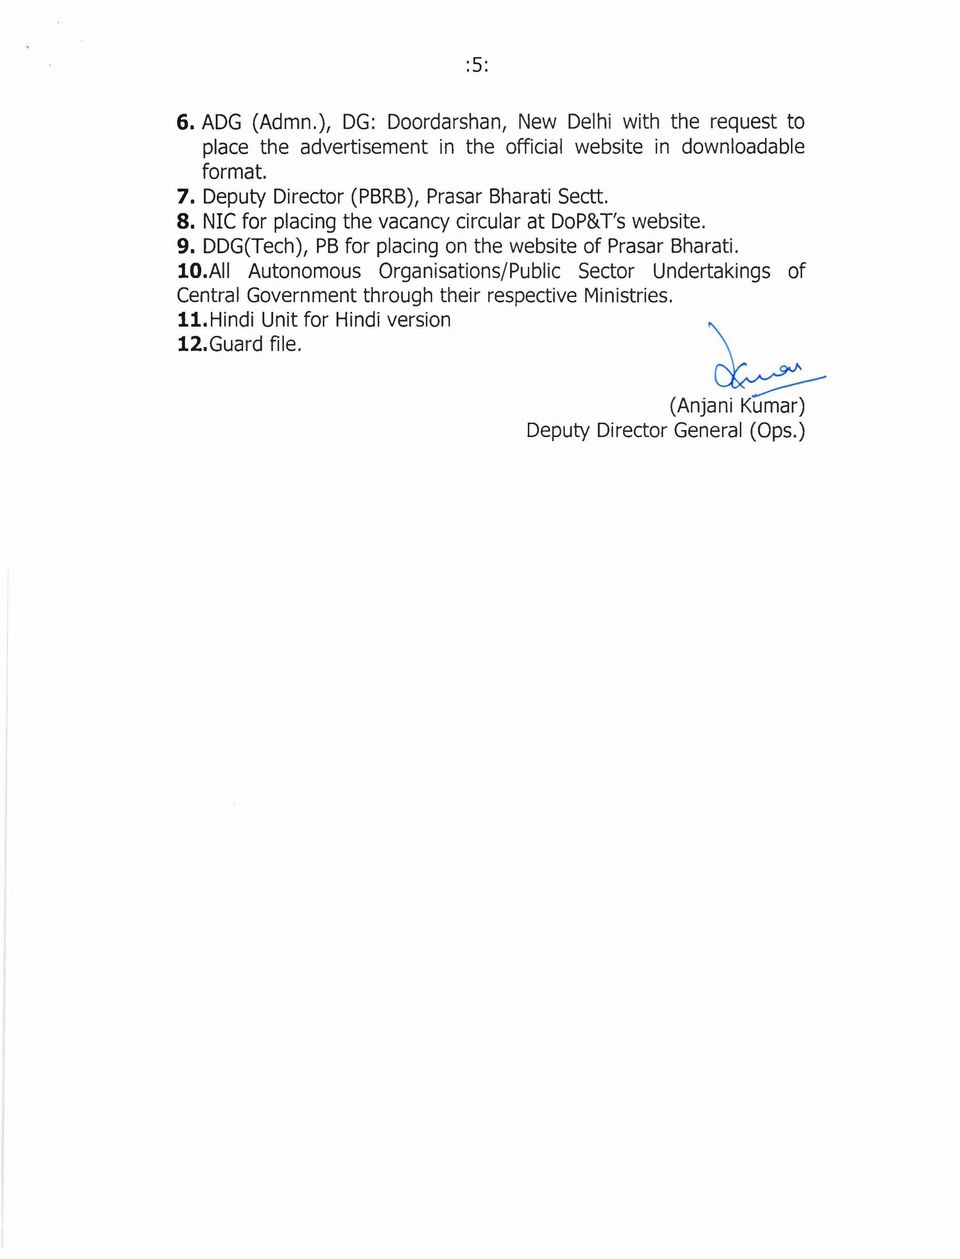 Deputy Director (PBRB), Prasar Bharati Sectt. 8. NIC for placing the vacancy circular at DoP&Ts website. 9.